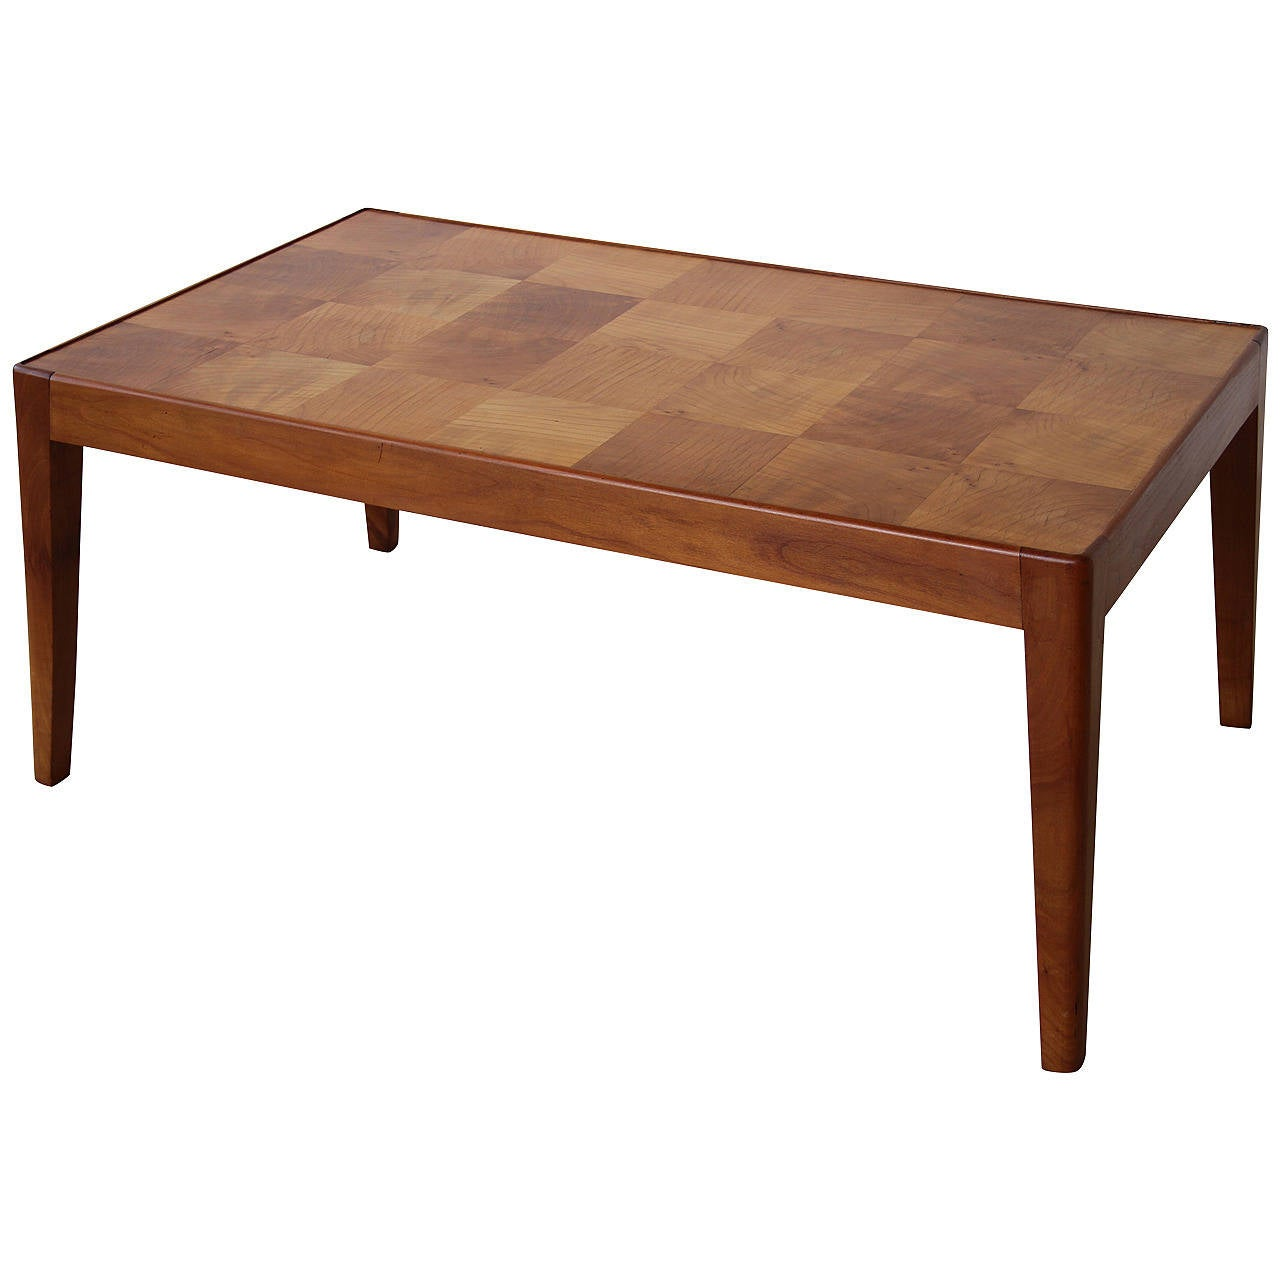 1950 Wild Cherry Coffee Table At 1stdibs